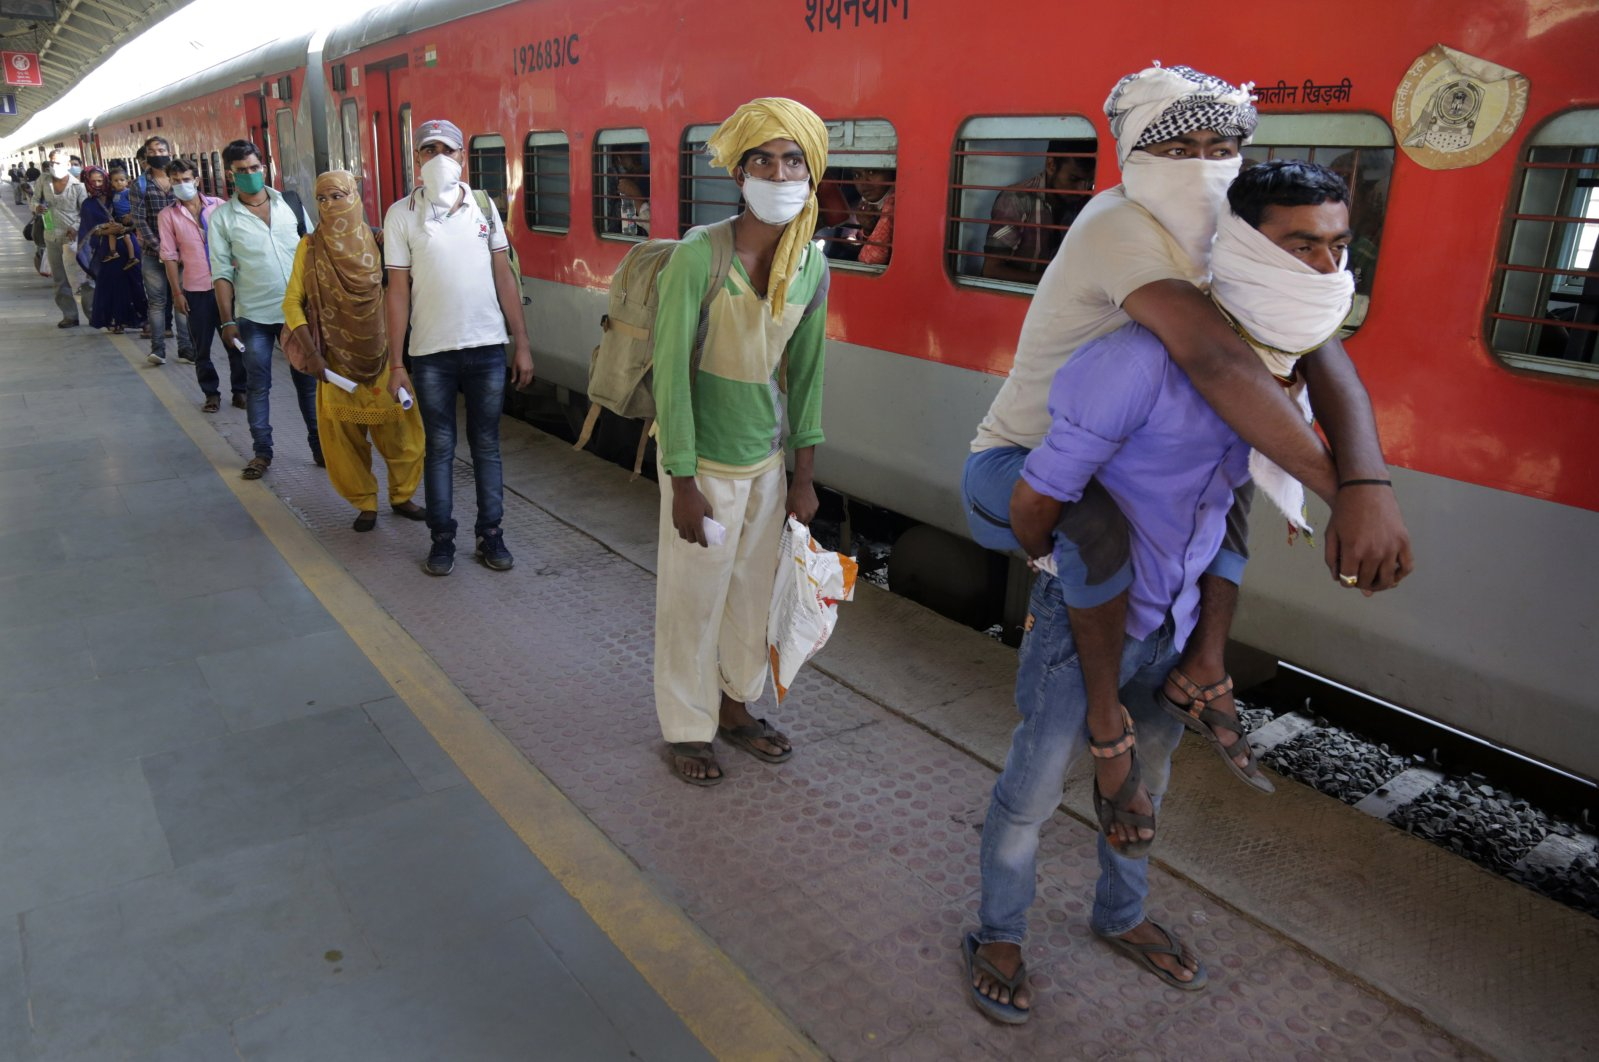 In this Saturday, May 2, 2020, photo, a man carries his physically disabled brother on his back as they wait to board a special train to return to Agra in Uttar Pradesh state, during a nationwide lockdown to curb the spread of new coronavirus, at a railway station in Ahmedabad, in the western Indian state of Gujarat. (AP Photo)